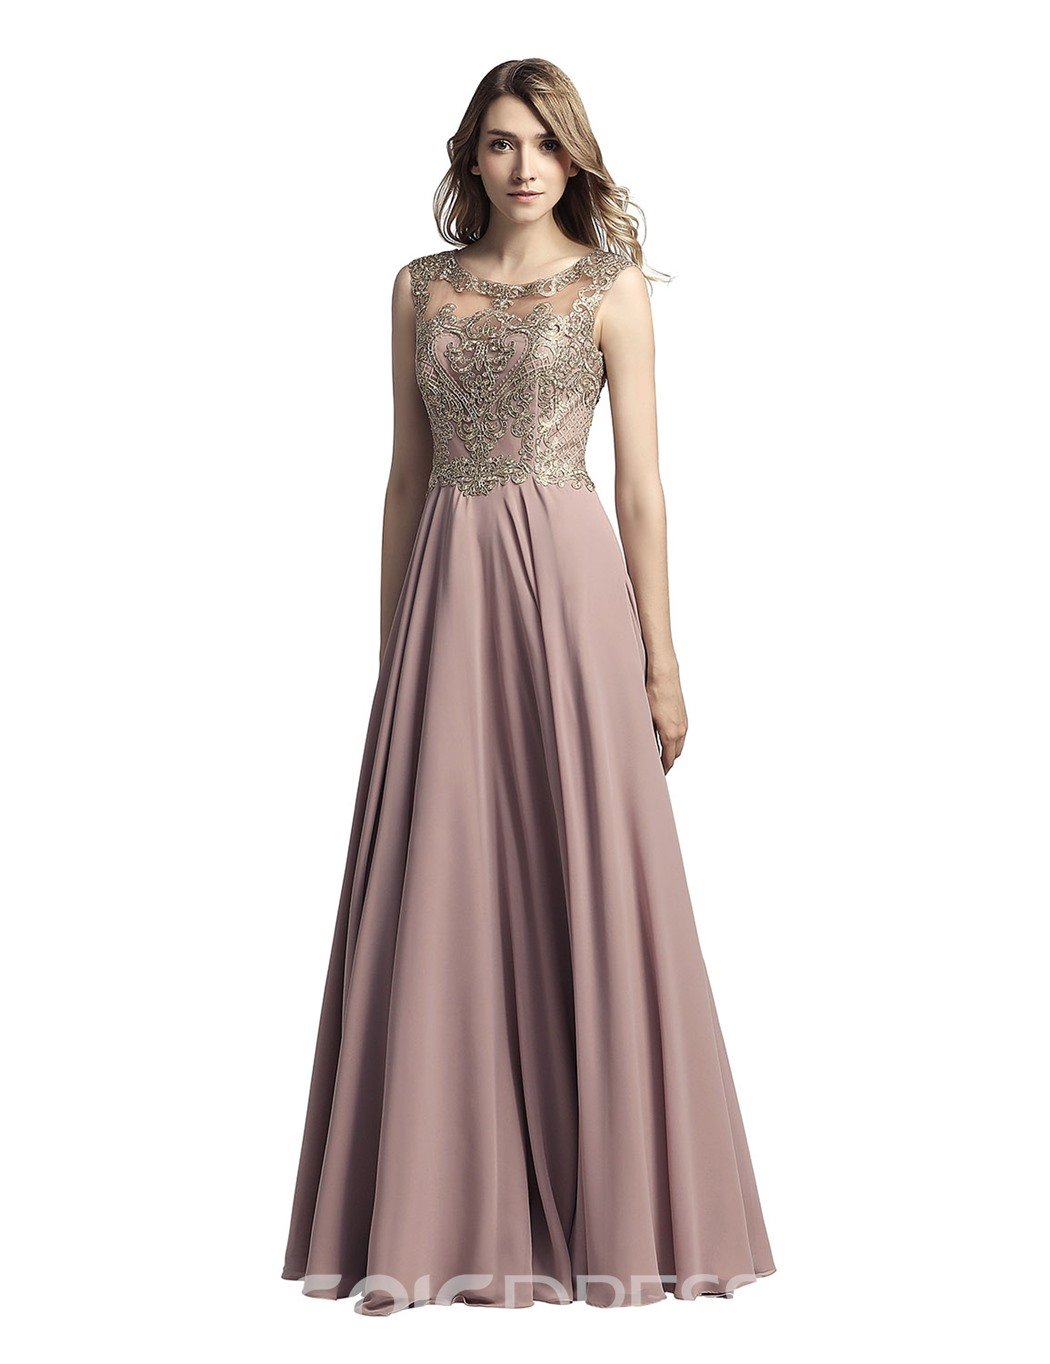 Ericdress Beading Sleeveless A-Line Prom Dress